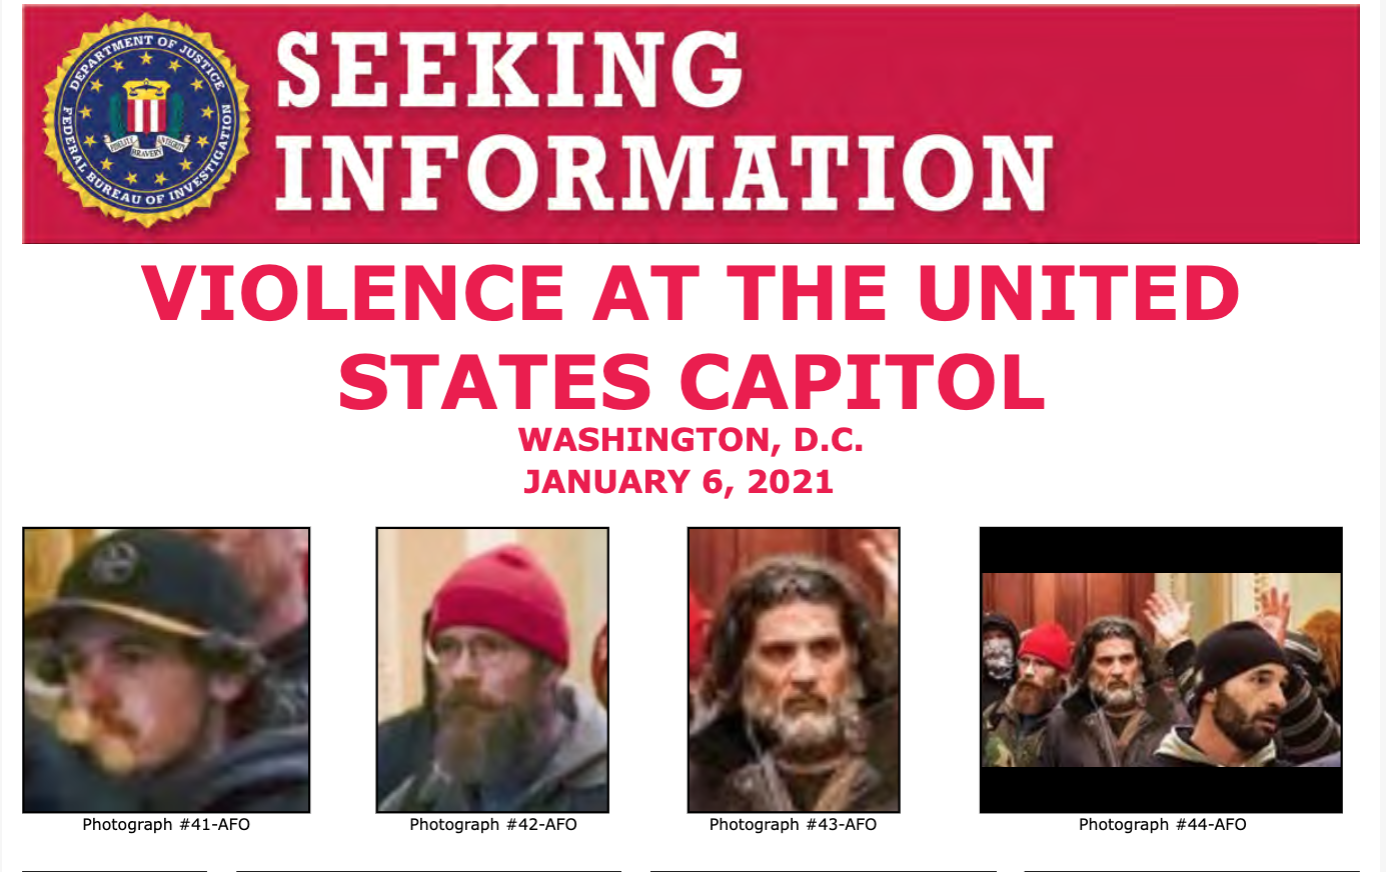 ScreA poster released by the FBI in the hopes identifying Capitol Hill rioters. Spazzo can be seen clearly in the third and fourth photograph. (Photo via FBI)